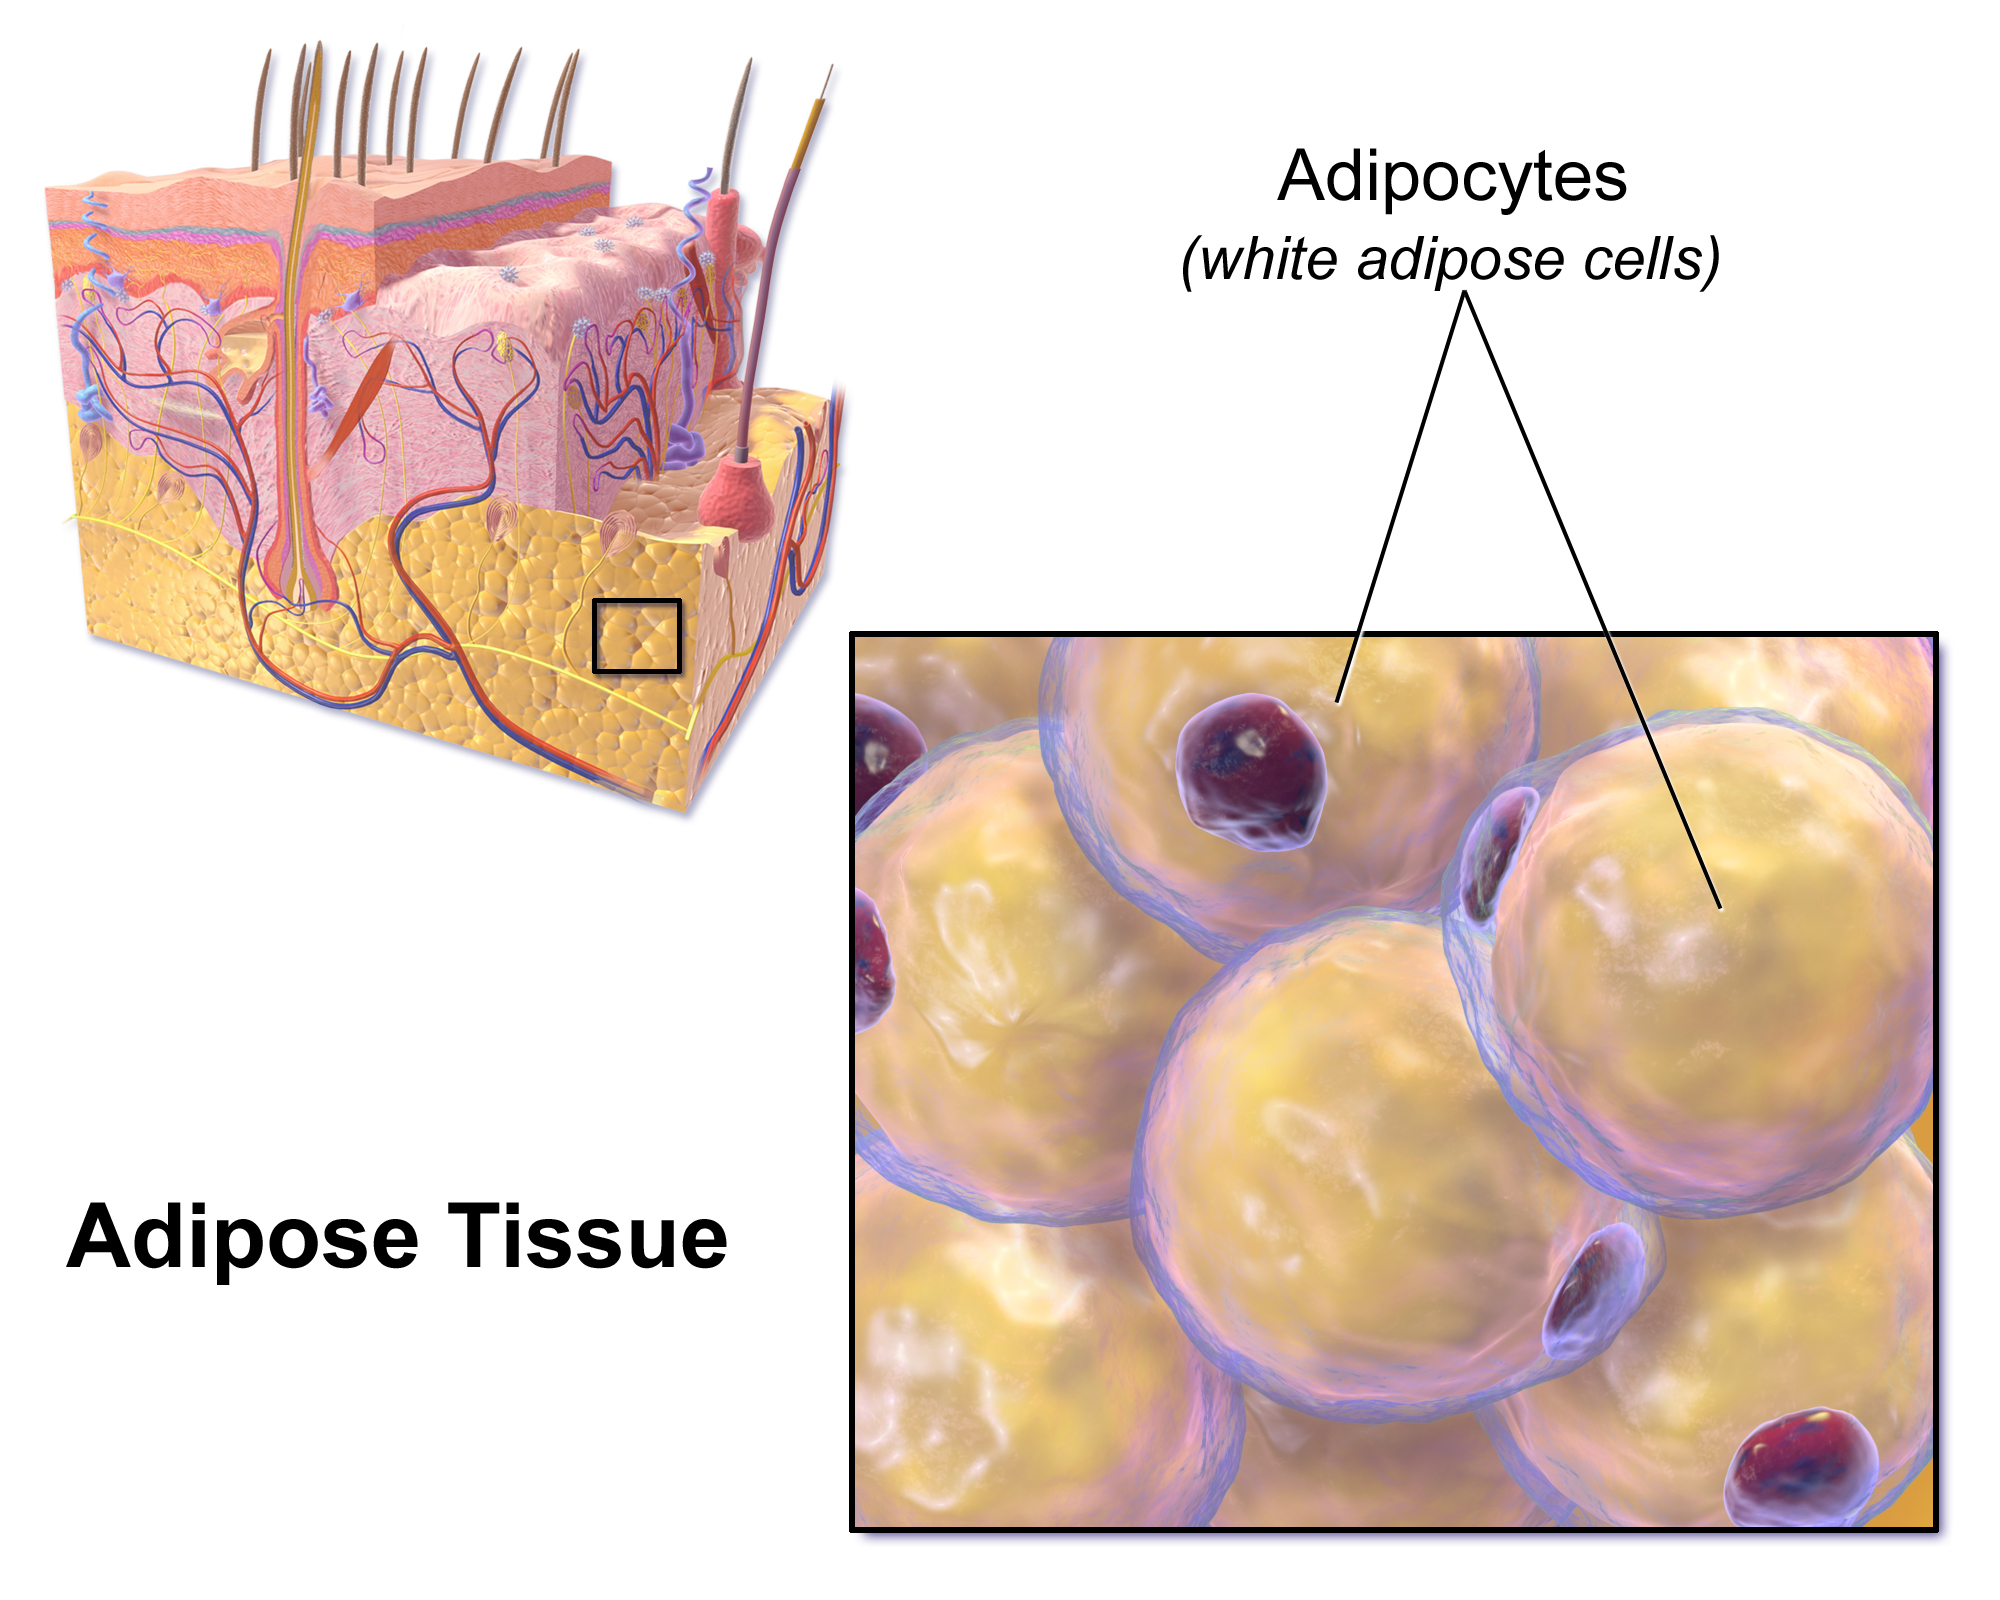 Adipose Tissue Png - File:Blausen 0012 AdiposeTissue.png - Wikimedia Commons